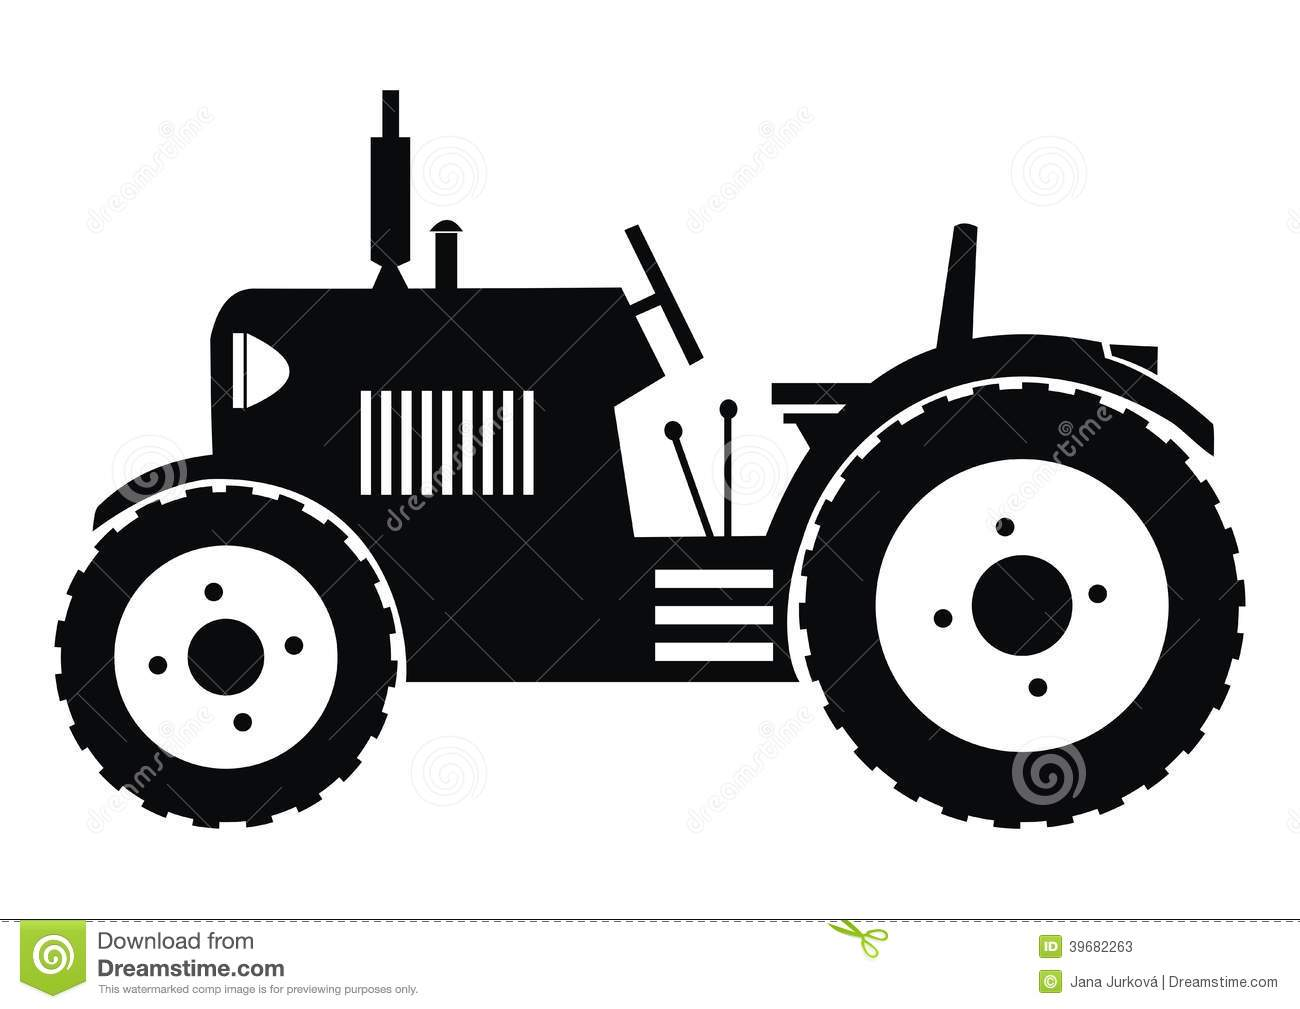 Black silhouette of a tractor on a white background.